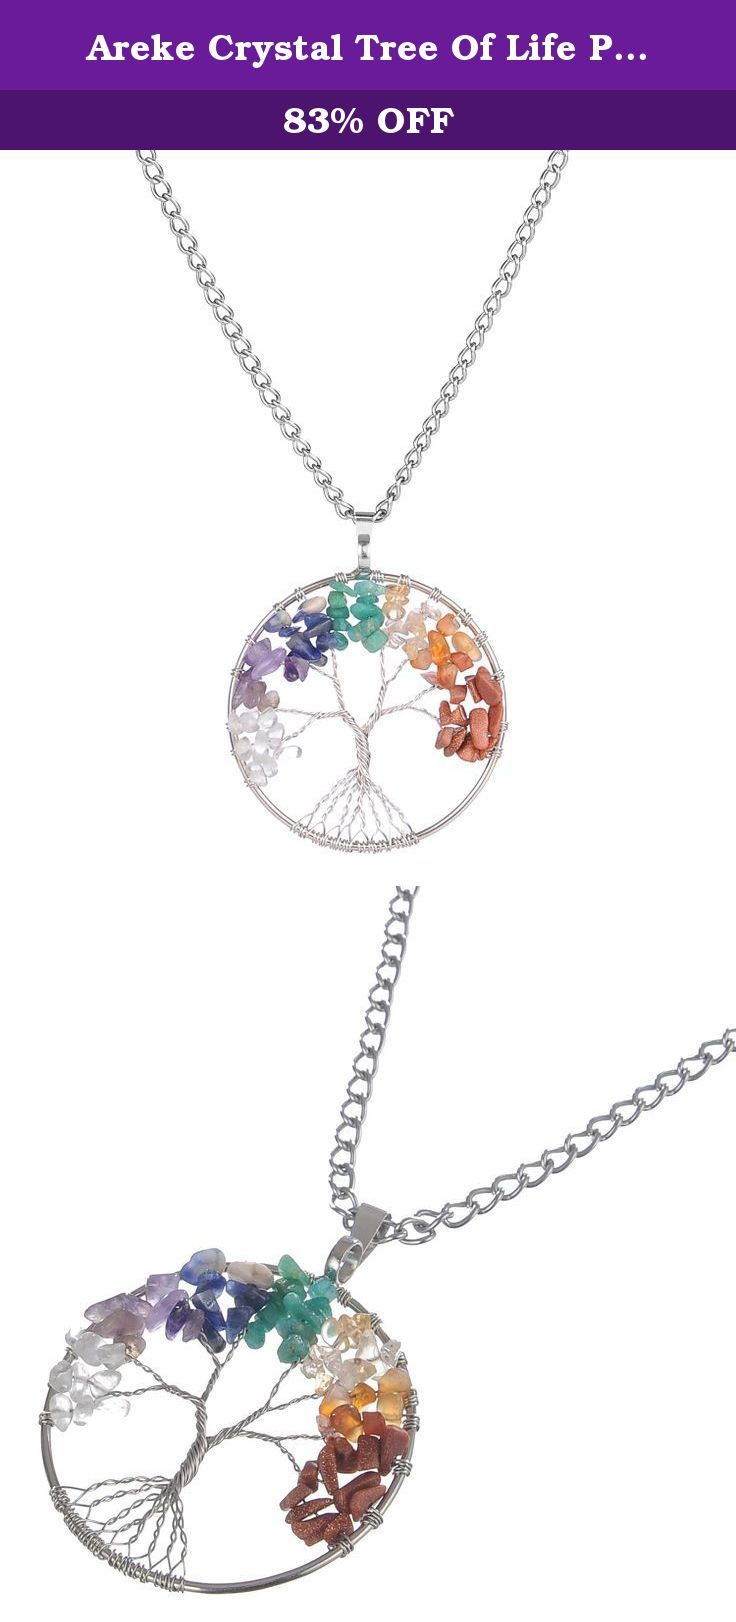 Areke Crystal Tree Of Life Pendant Chain Necklace for Men Women - Amethyst Chakras Gemstone Charms Color Silver. AREKE - High quality Jewelry Discover the AREKE Collection of jewelry. The selection of high-quality jewelry featured in the AREKE Collection offers Great values at affordable Price, they mainly made of high quality Stainless Steel, Tungsten, Silver and Leather. Find a special gift for a loved one or a beautiful piece that complements your personal style with jewelry from the...